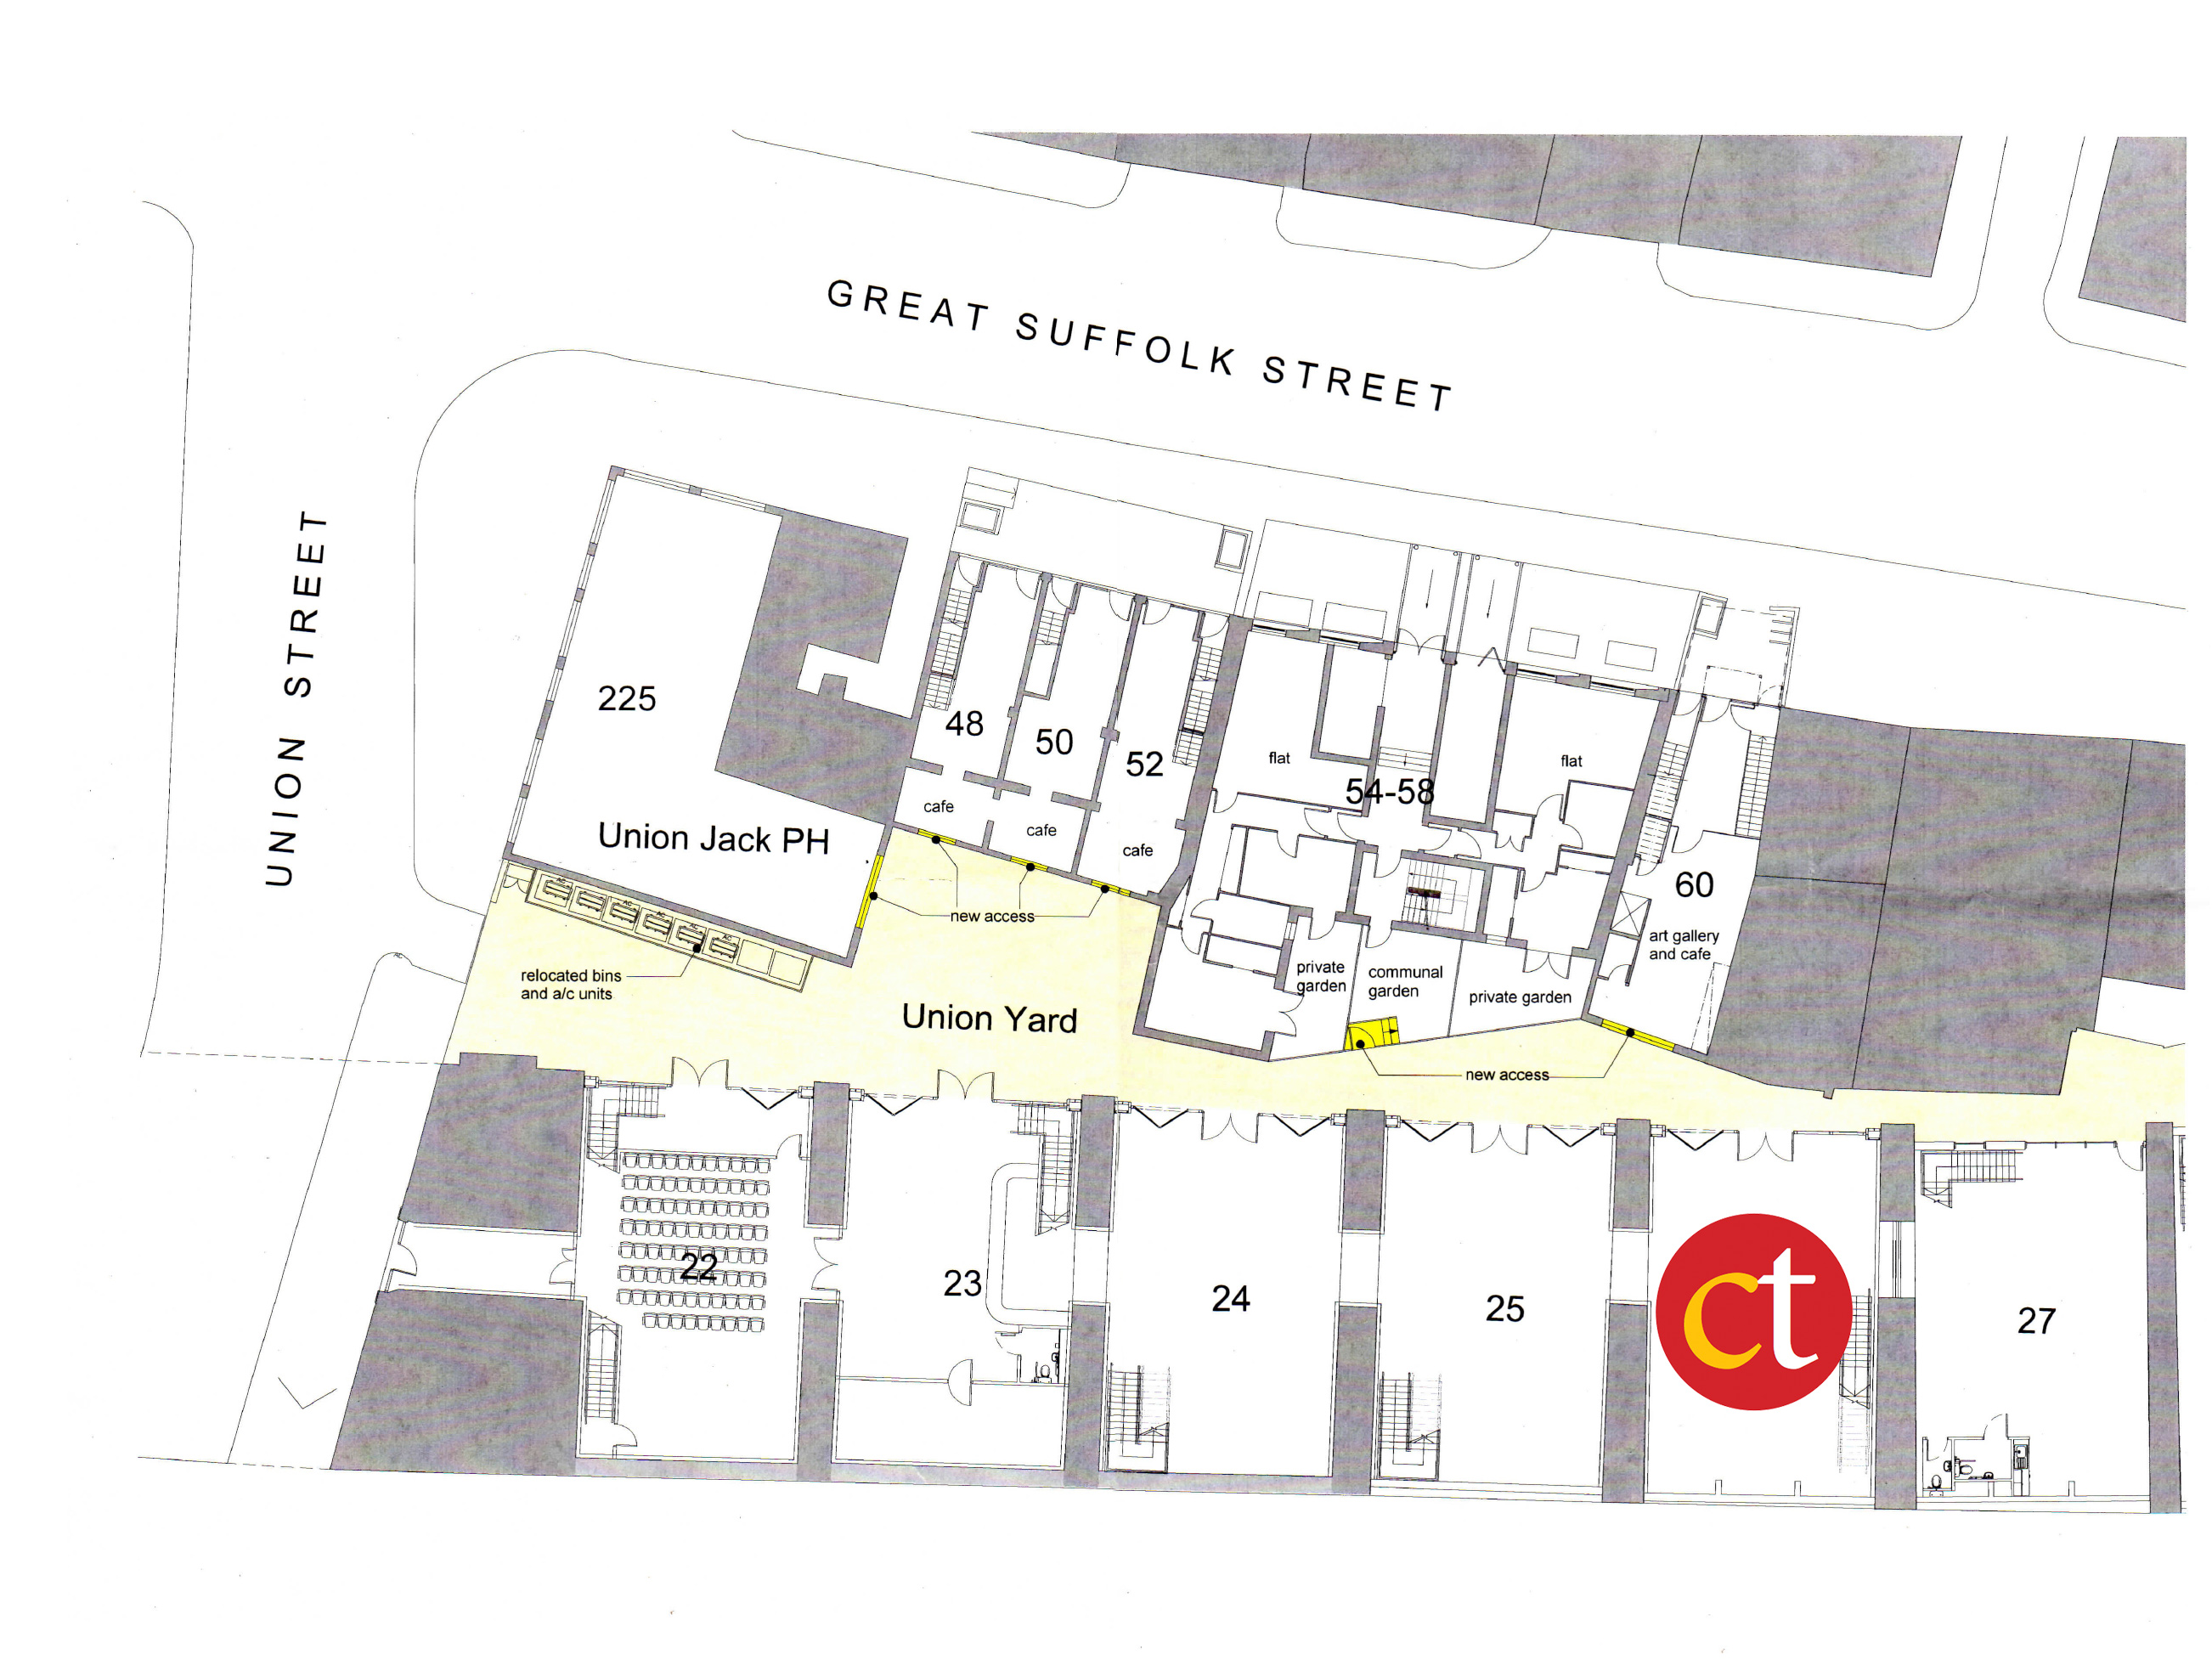 Diagram showing position of Cervantes Theatre in Union Street